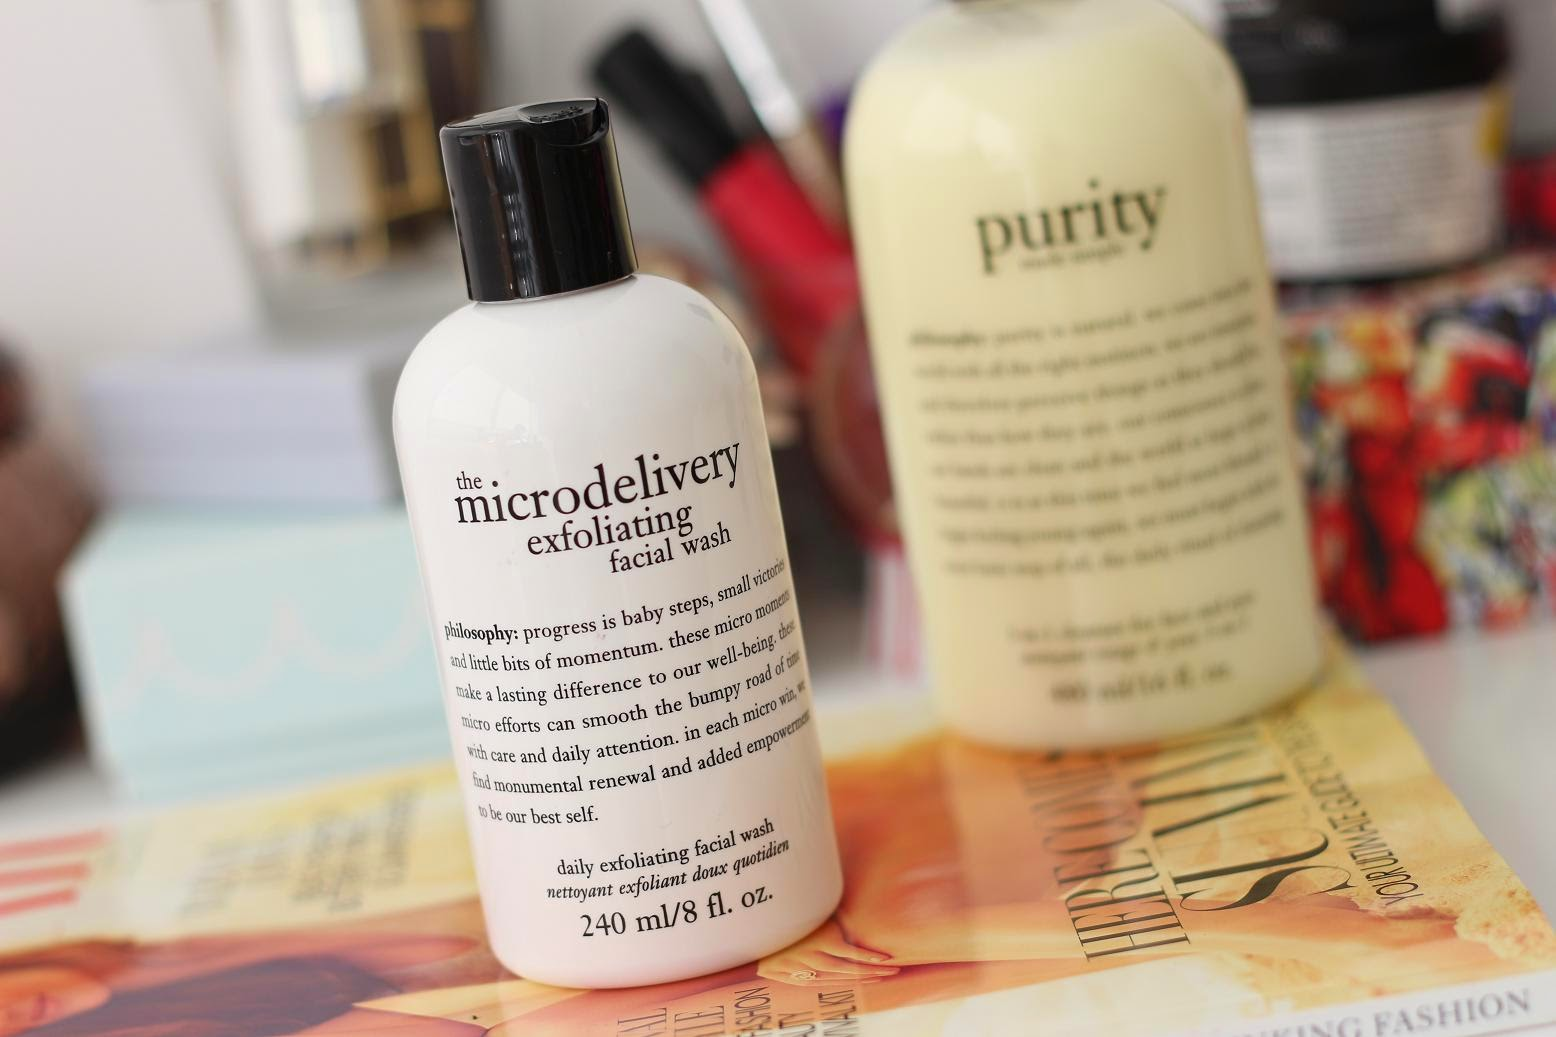 Philosophy Microdelivery Exfoliating Facial Wash